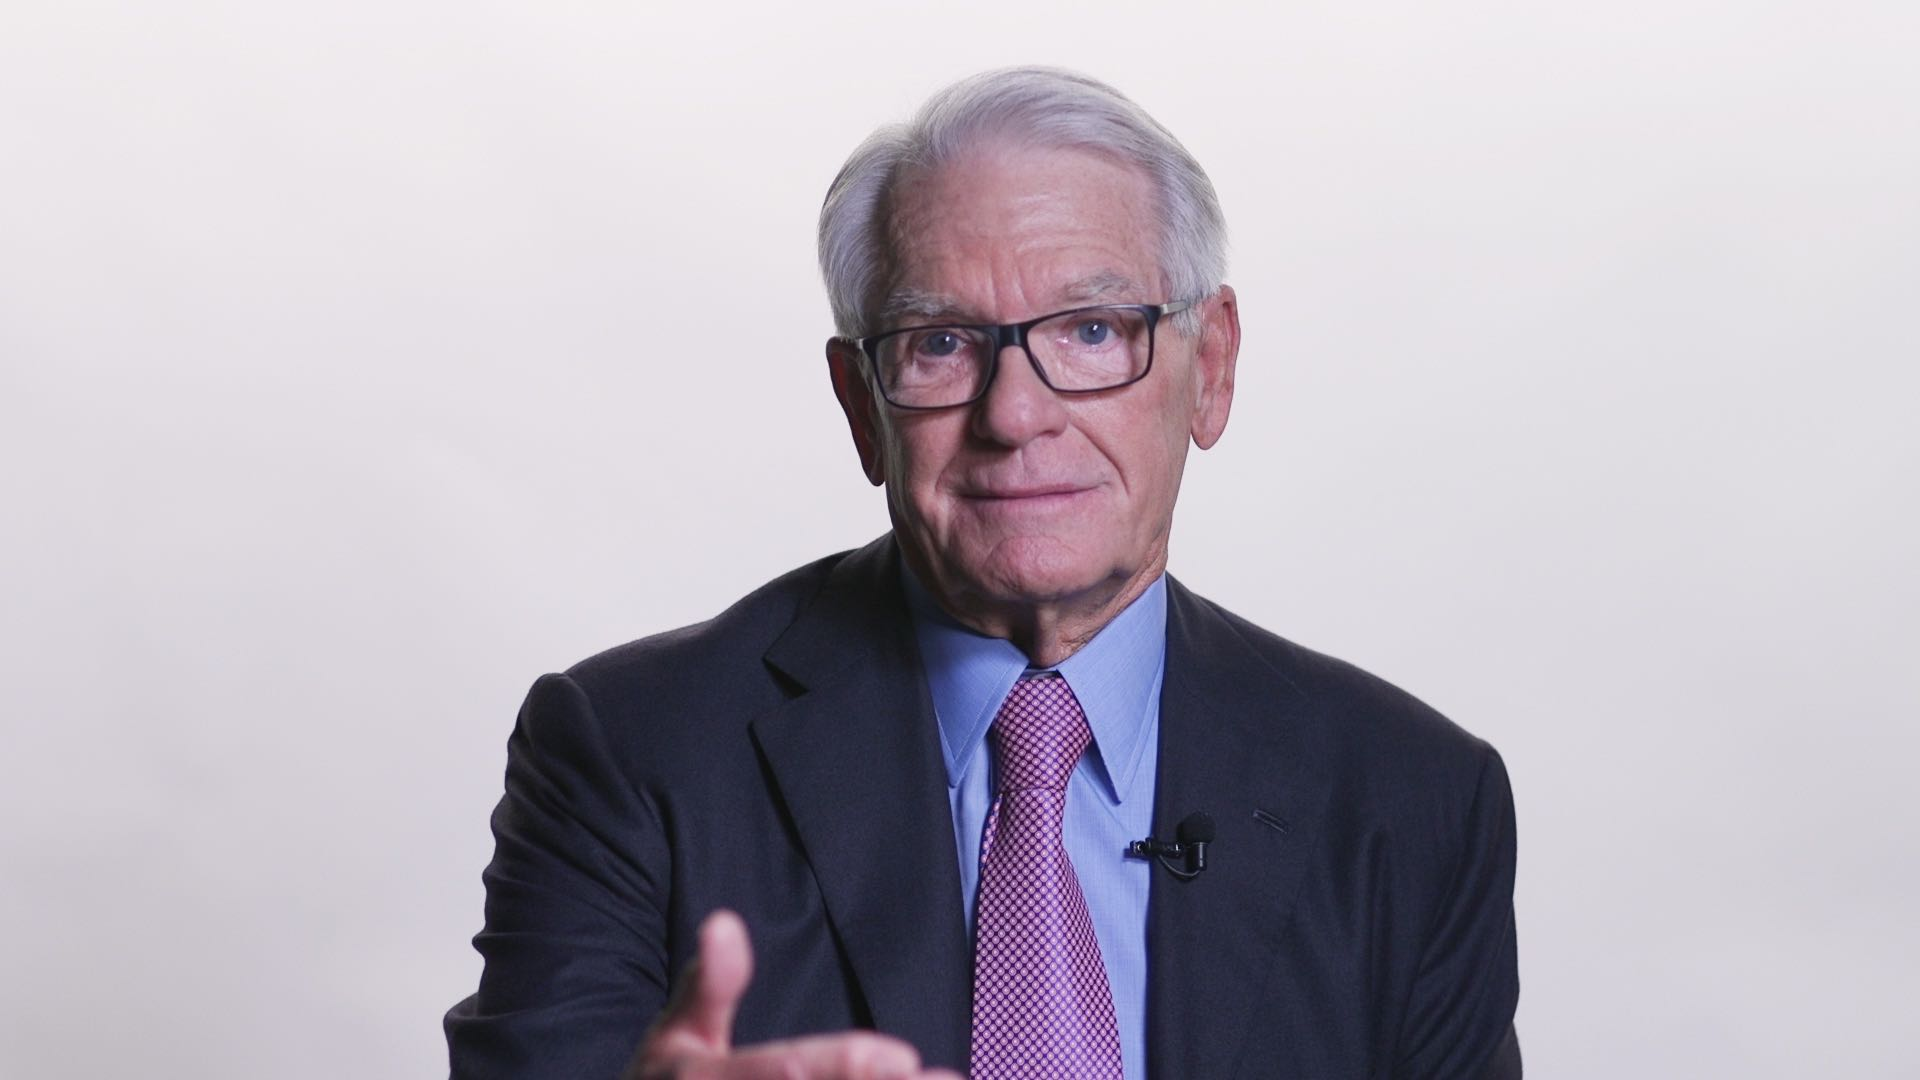 Charles Schwab: This is the most important skill for an entrepreneur